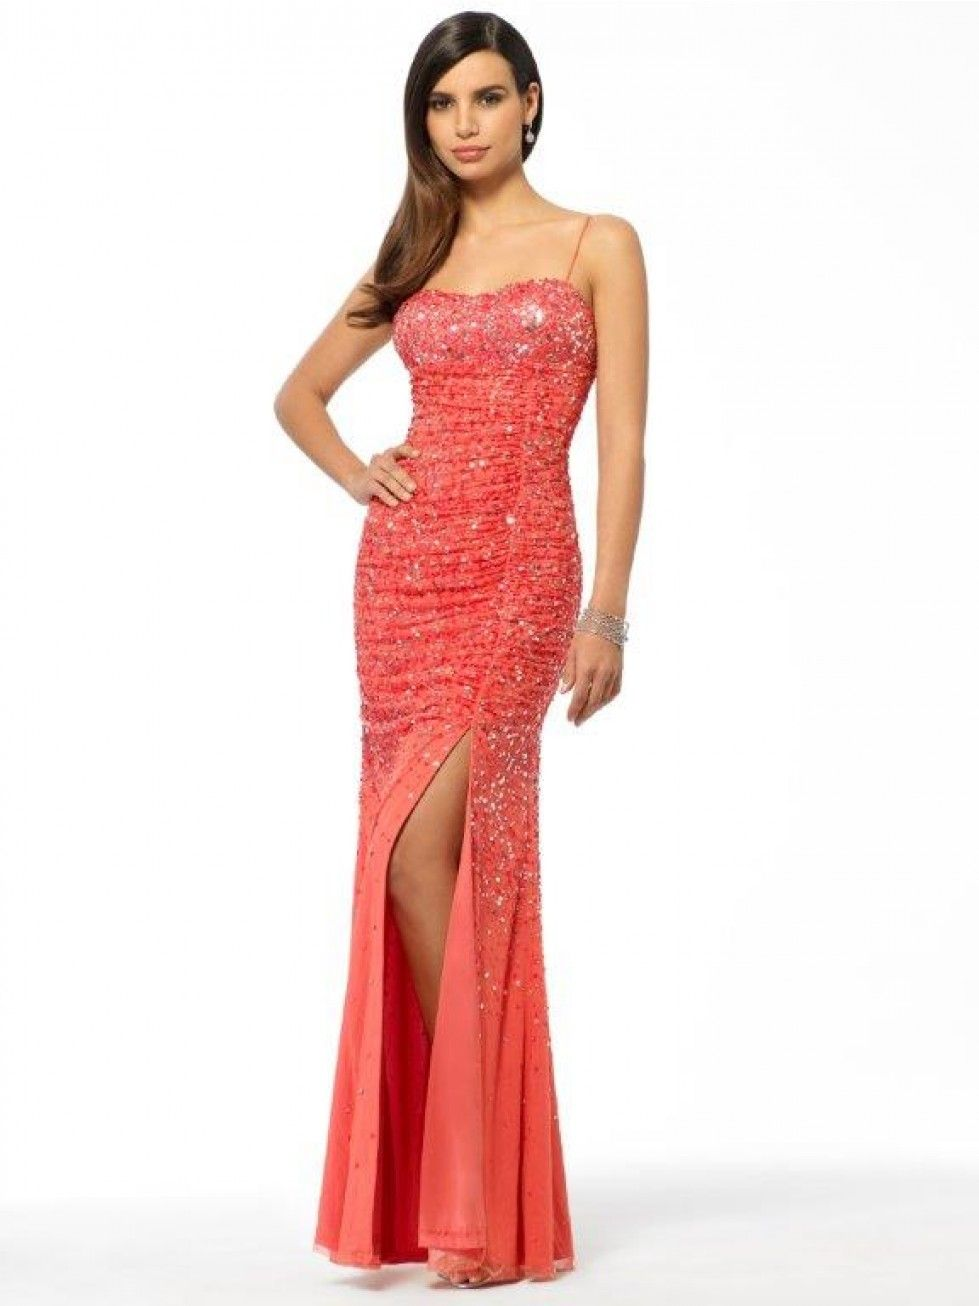 Coral Sequin Slit Gown - Dresses - Sale - Sale | DRESS | Pinterest ...